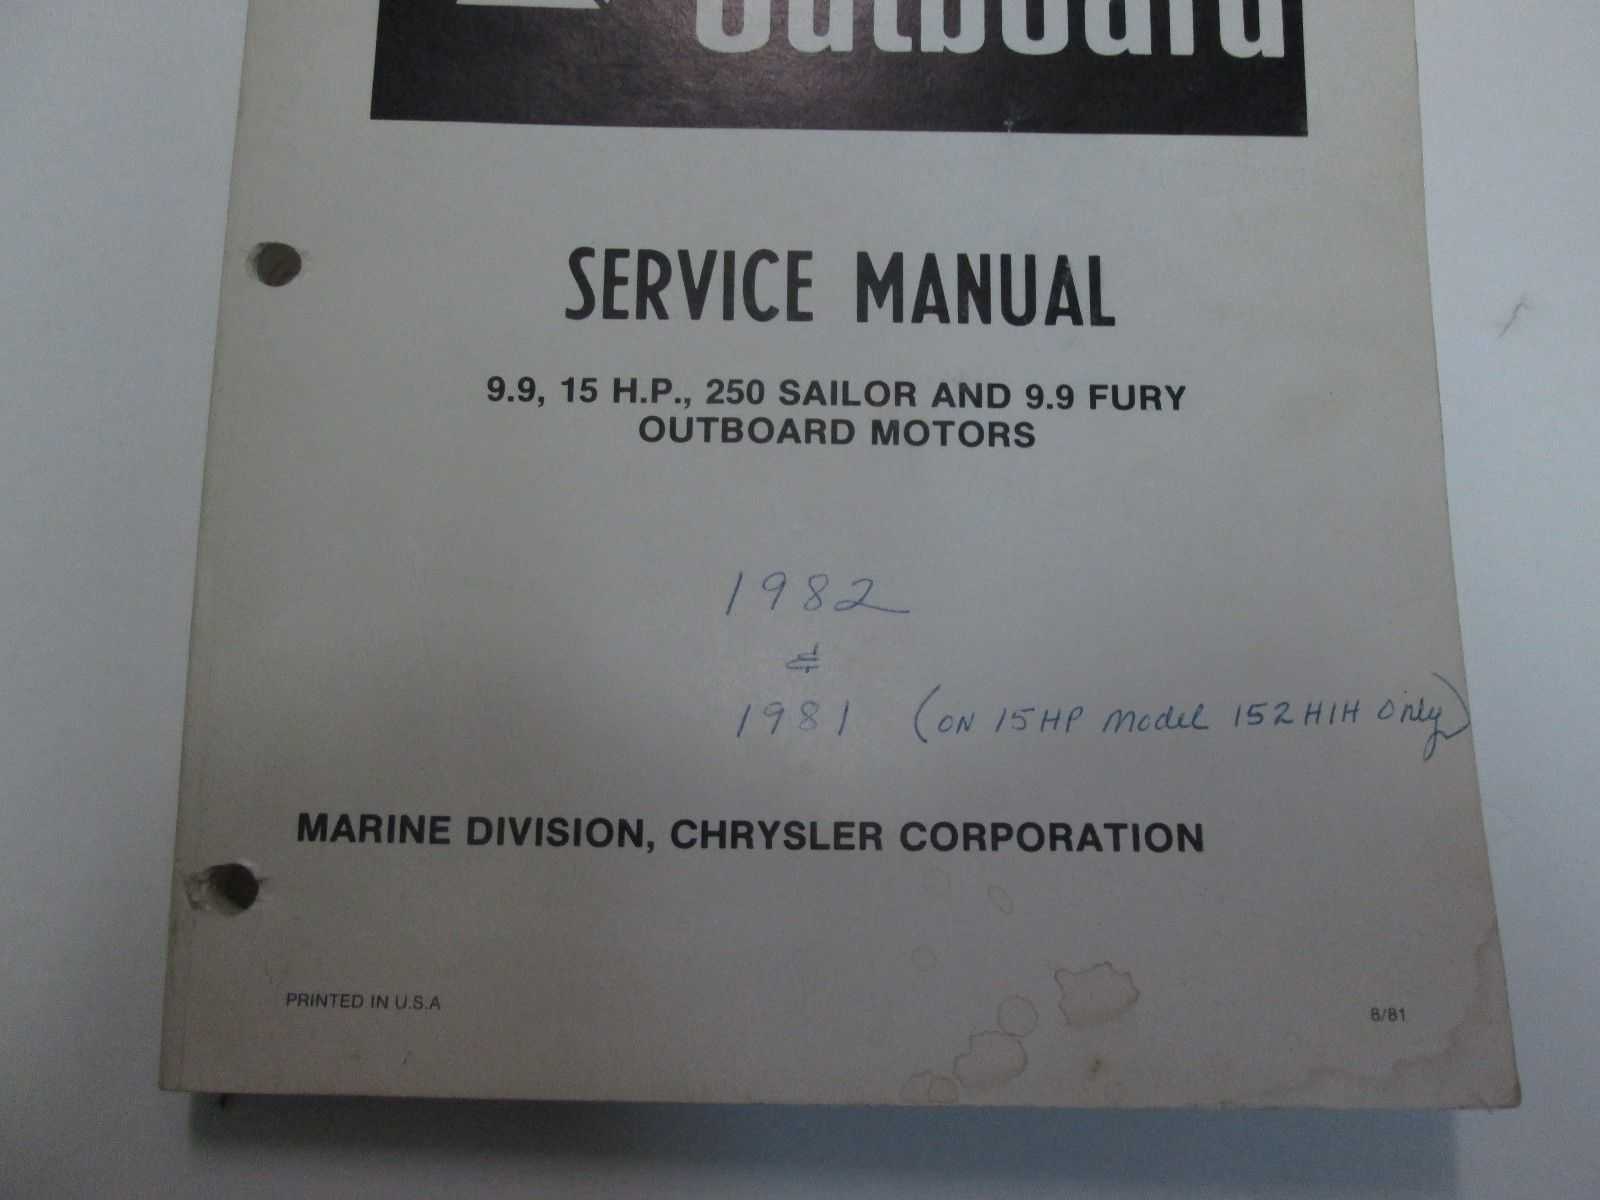 1982 Chrysler Outboard 99 15 Hp 250 And 40 Similar Items 55 Diagram Sailor Fury Service Manual Worn Faded